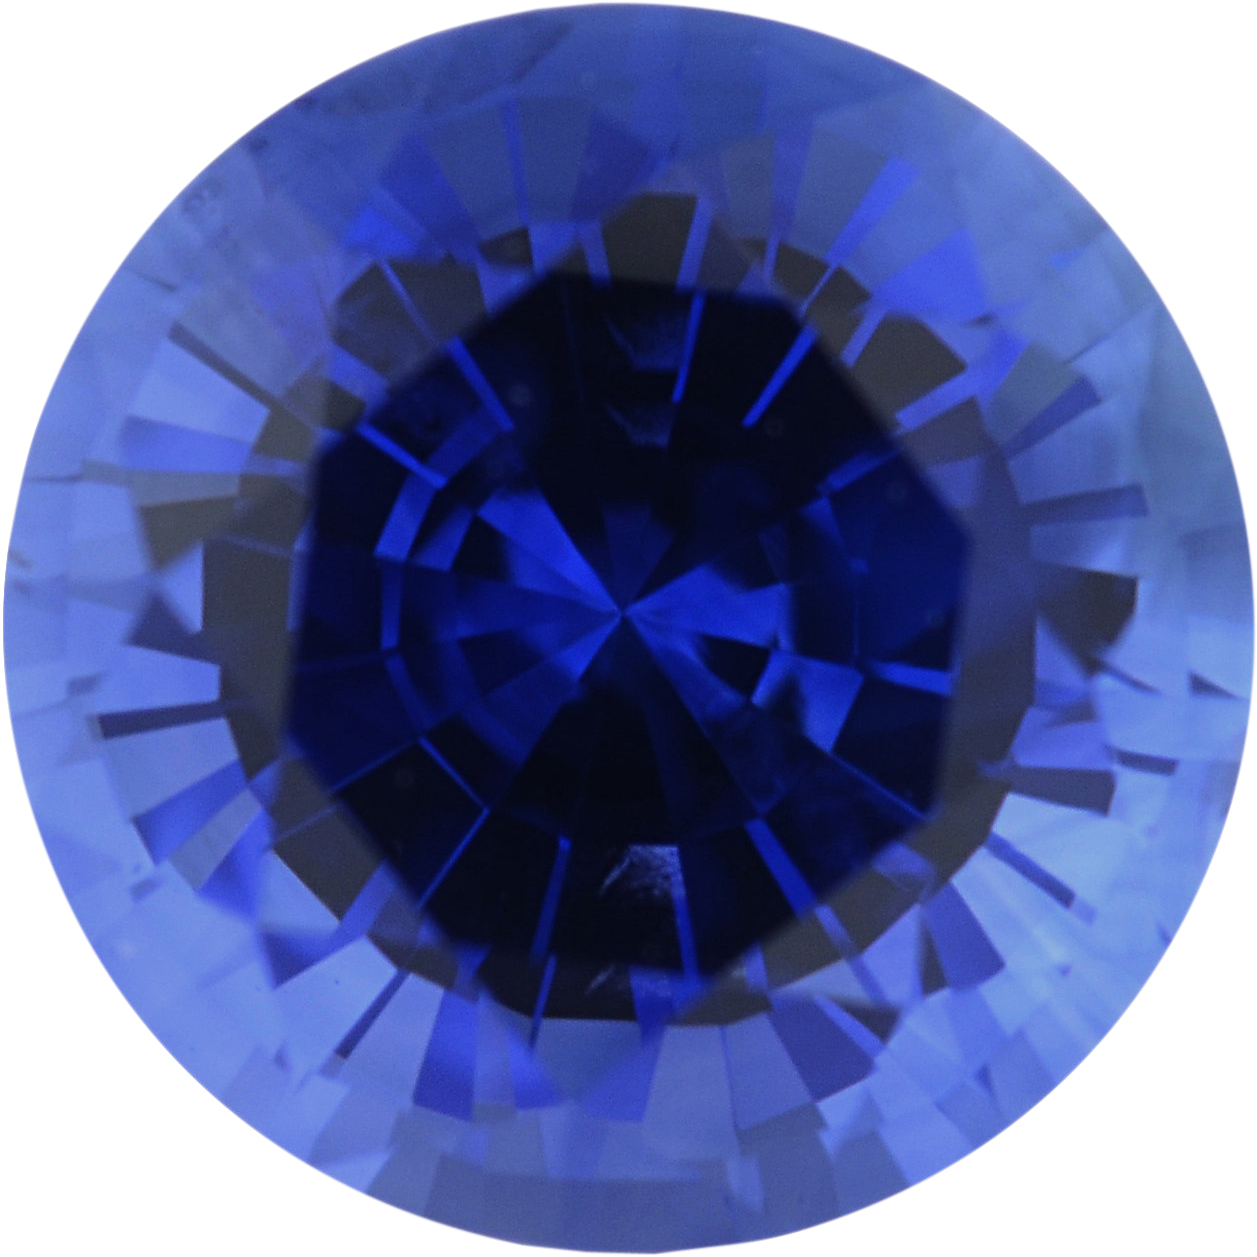 Loose Sapphire Loose Gem in Round Cut, Medium Violet Blue, 6.09 mm, 1.14 Carats